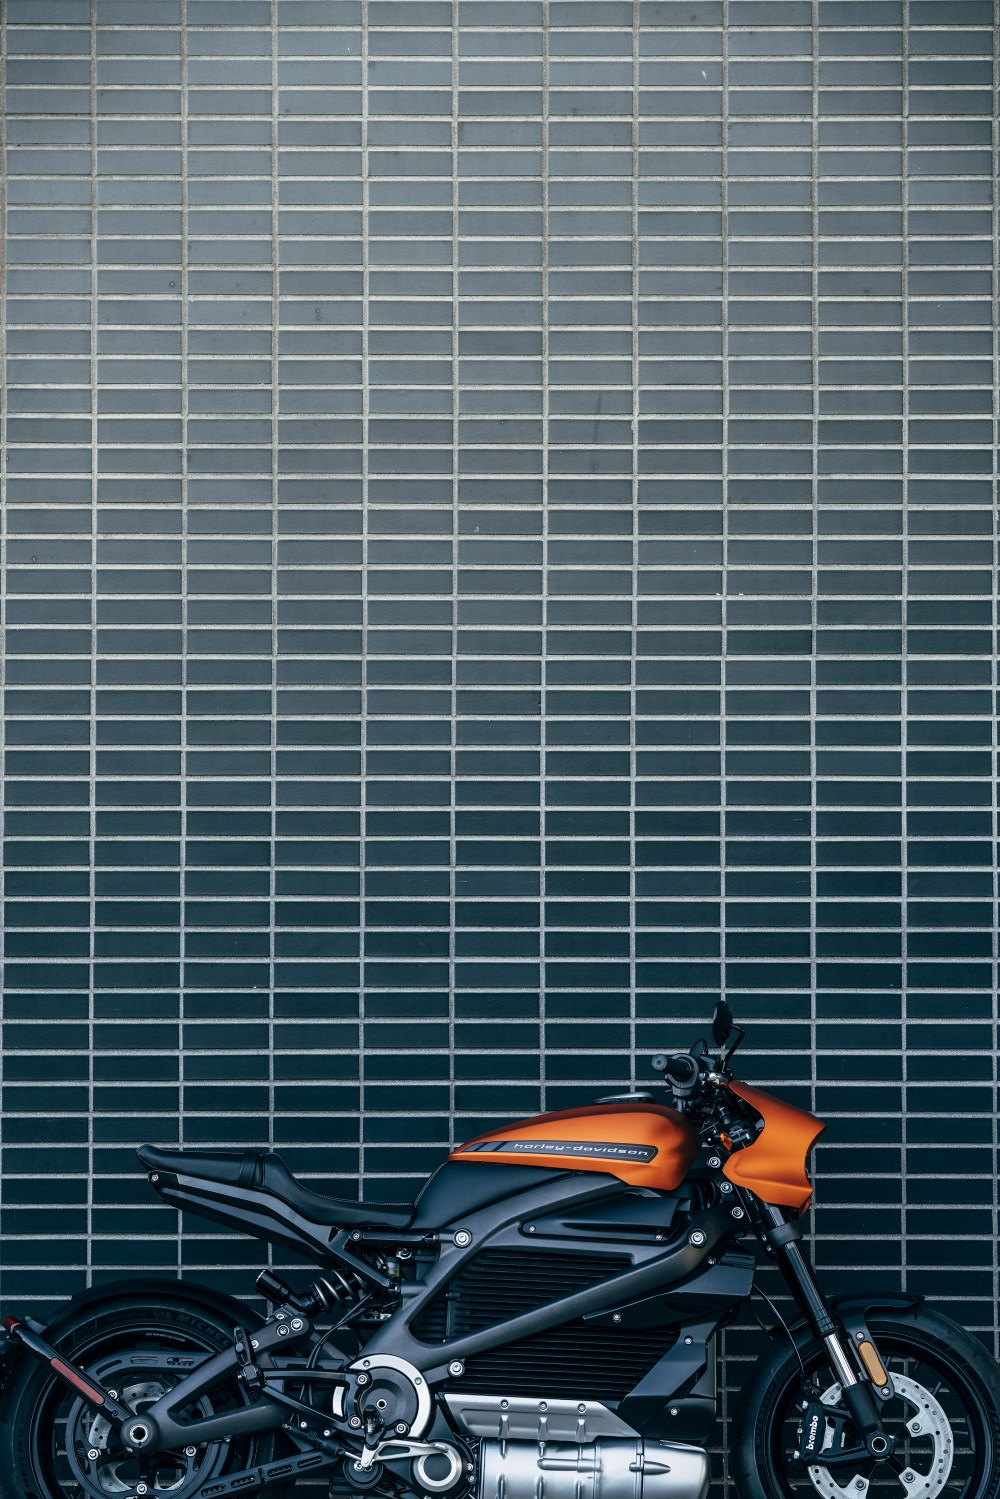 hight resolution of orange and black motorcycle